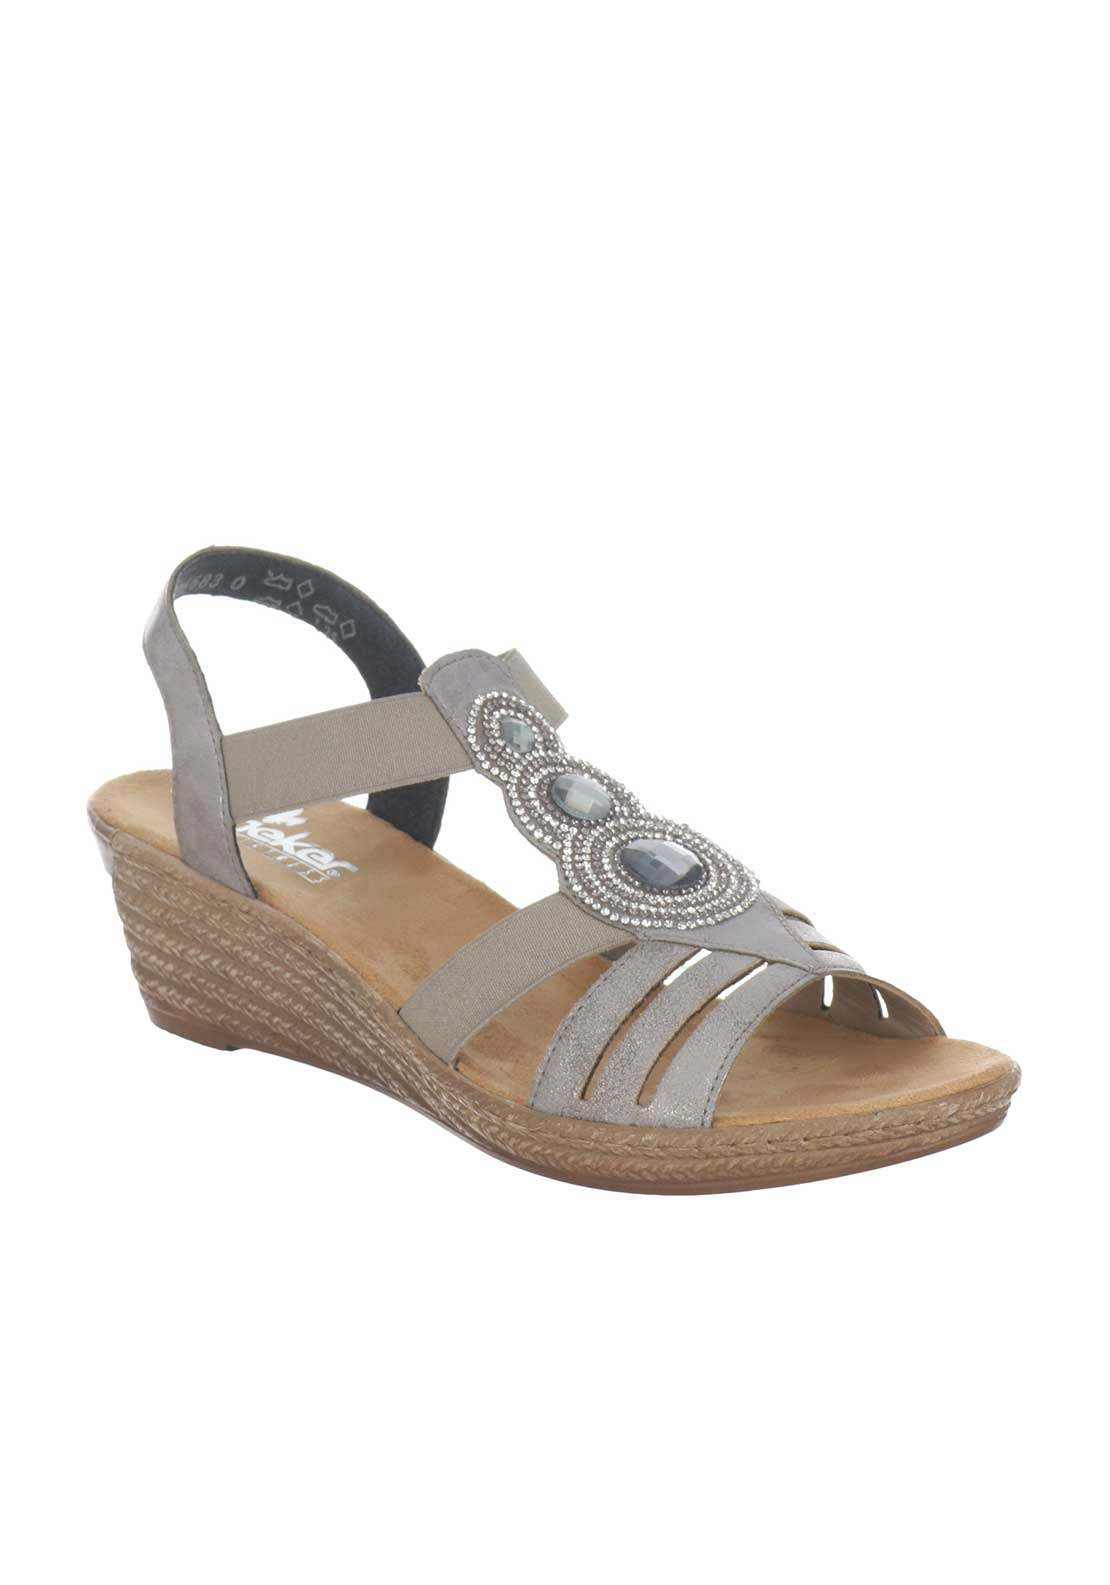 Rieker Womens Diamante Embellished Wedged Sandals, Silver